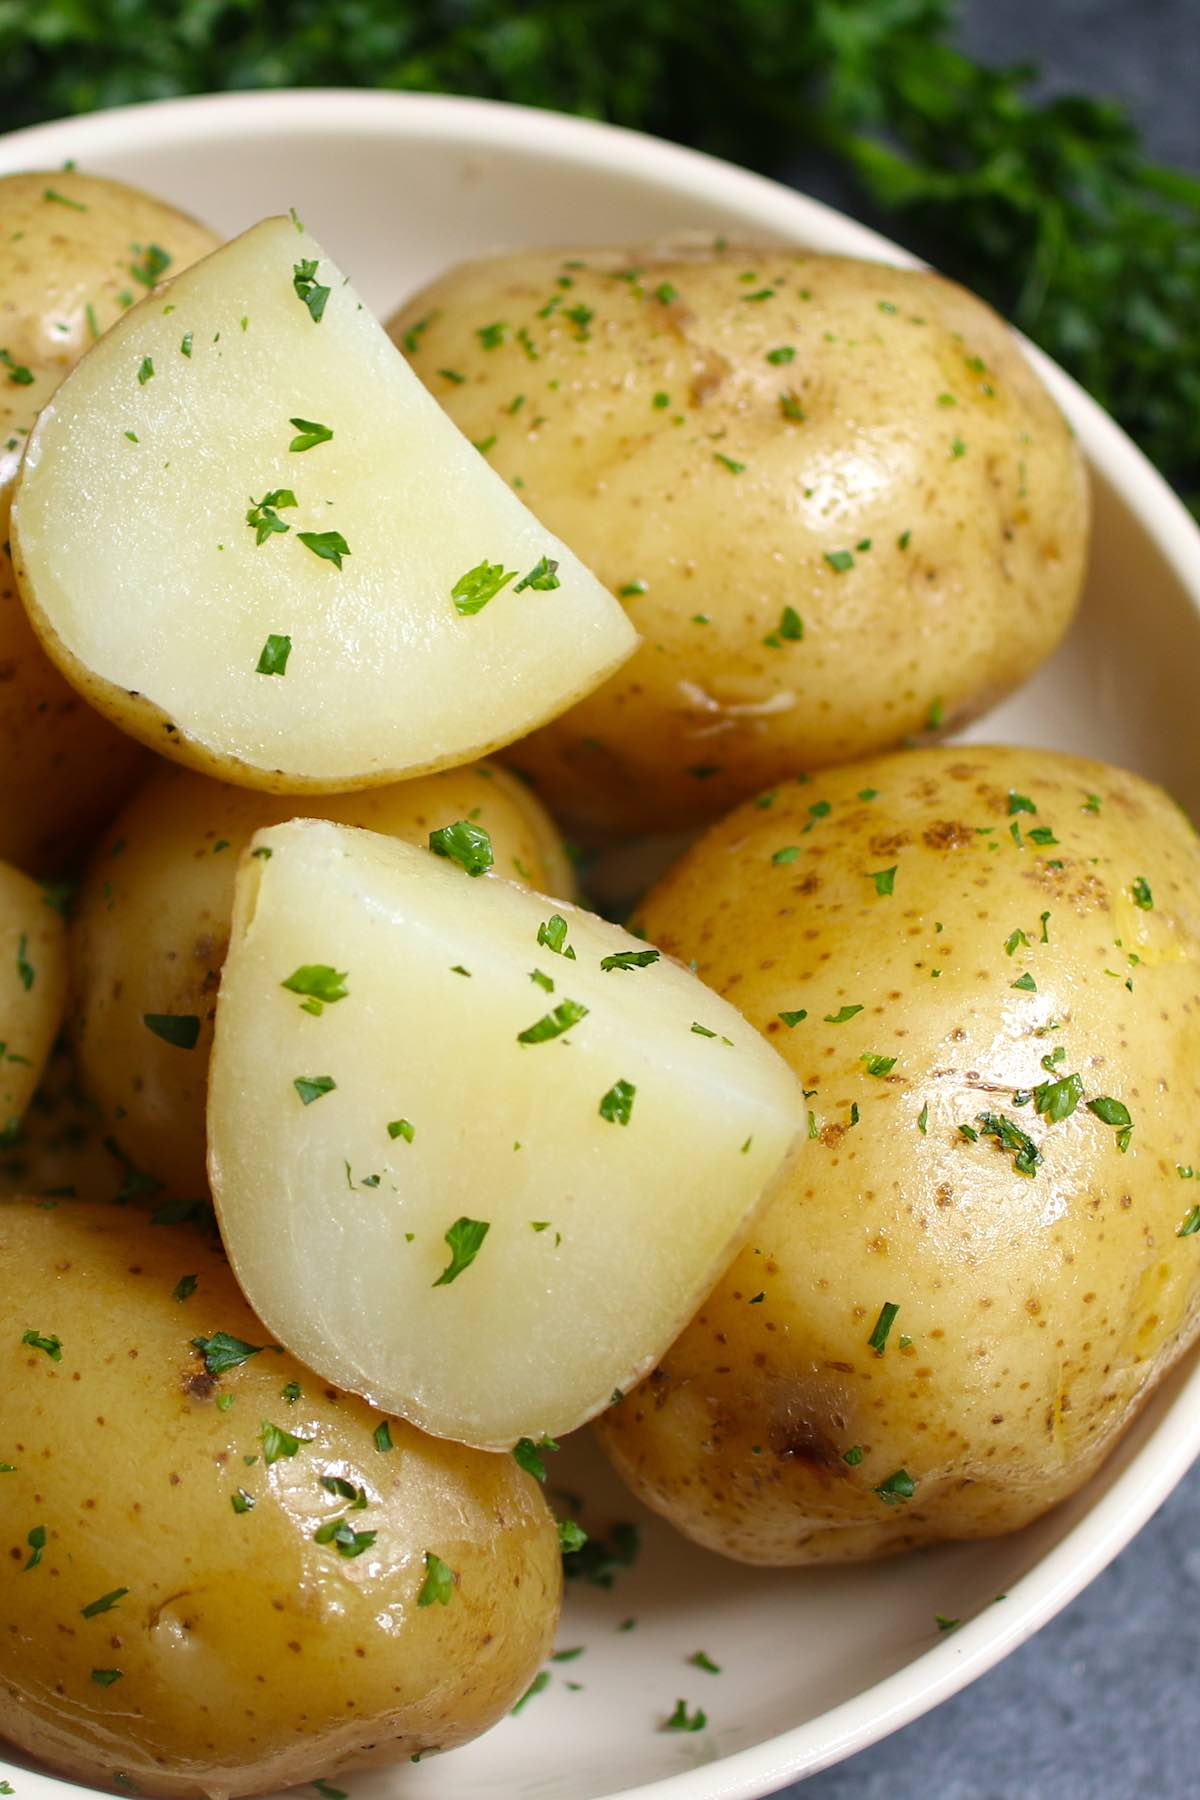 How Long to Boil Potatoes - TipBuzz